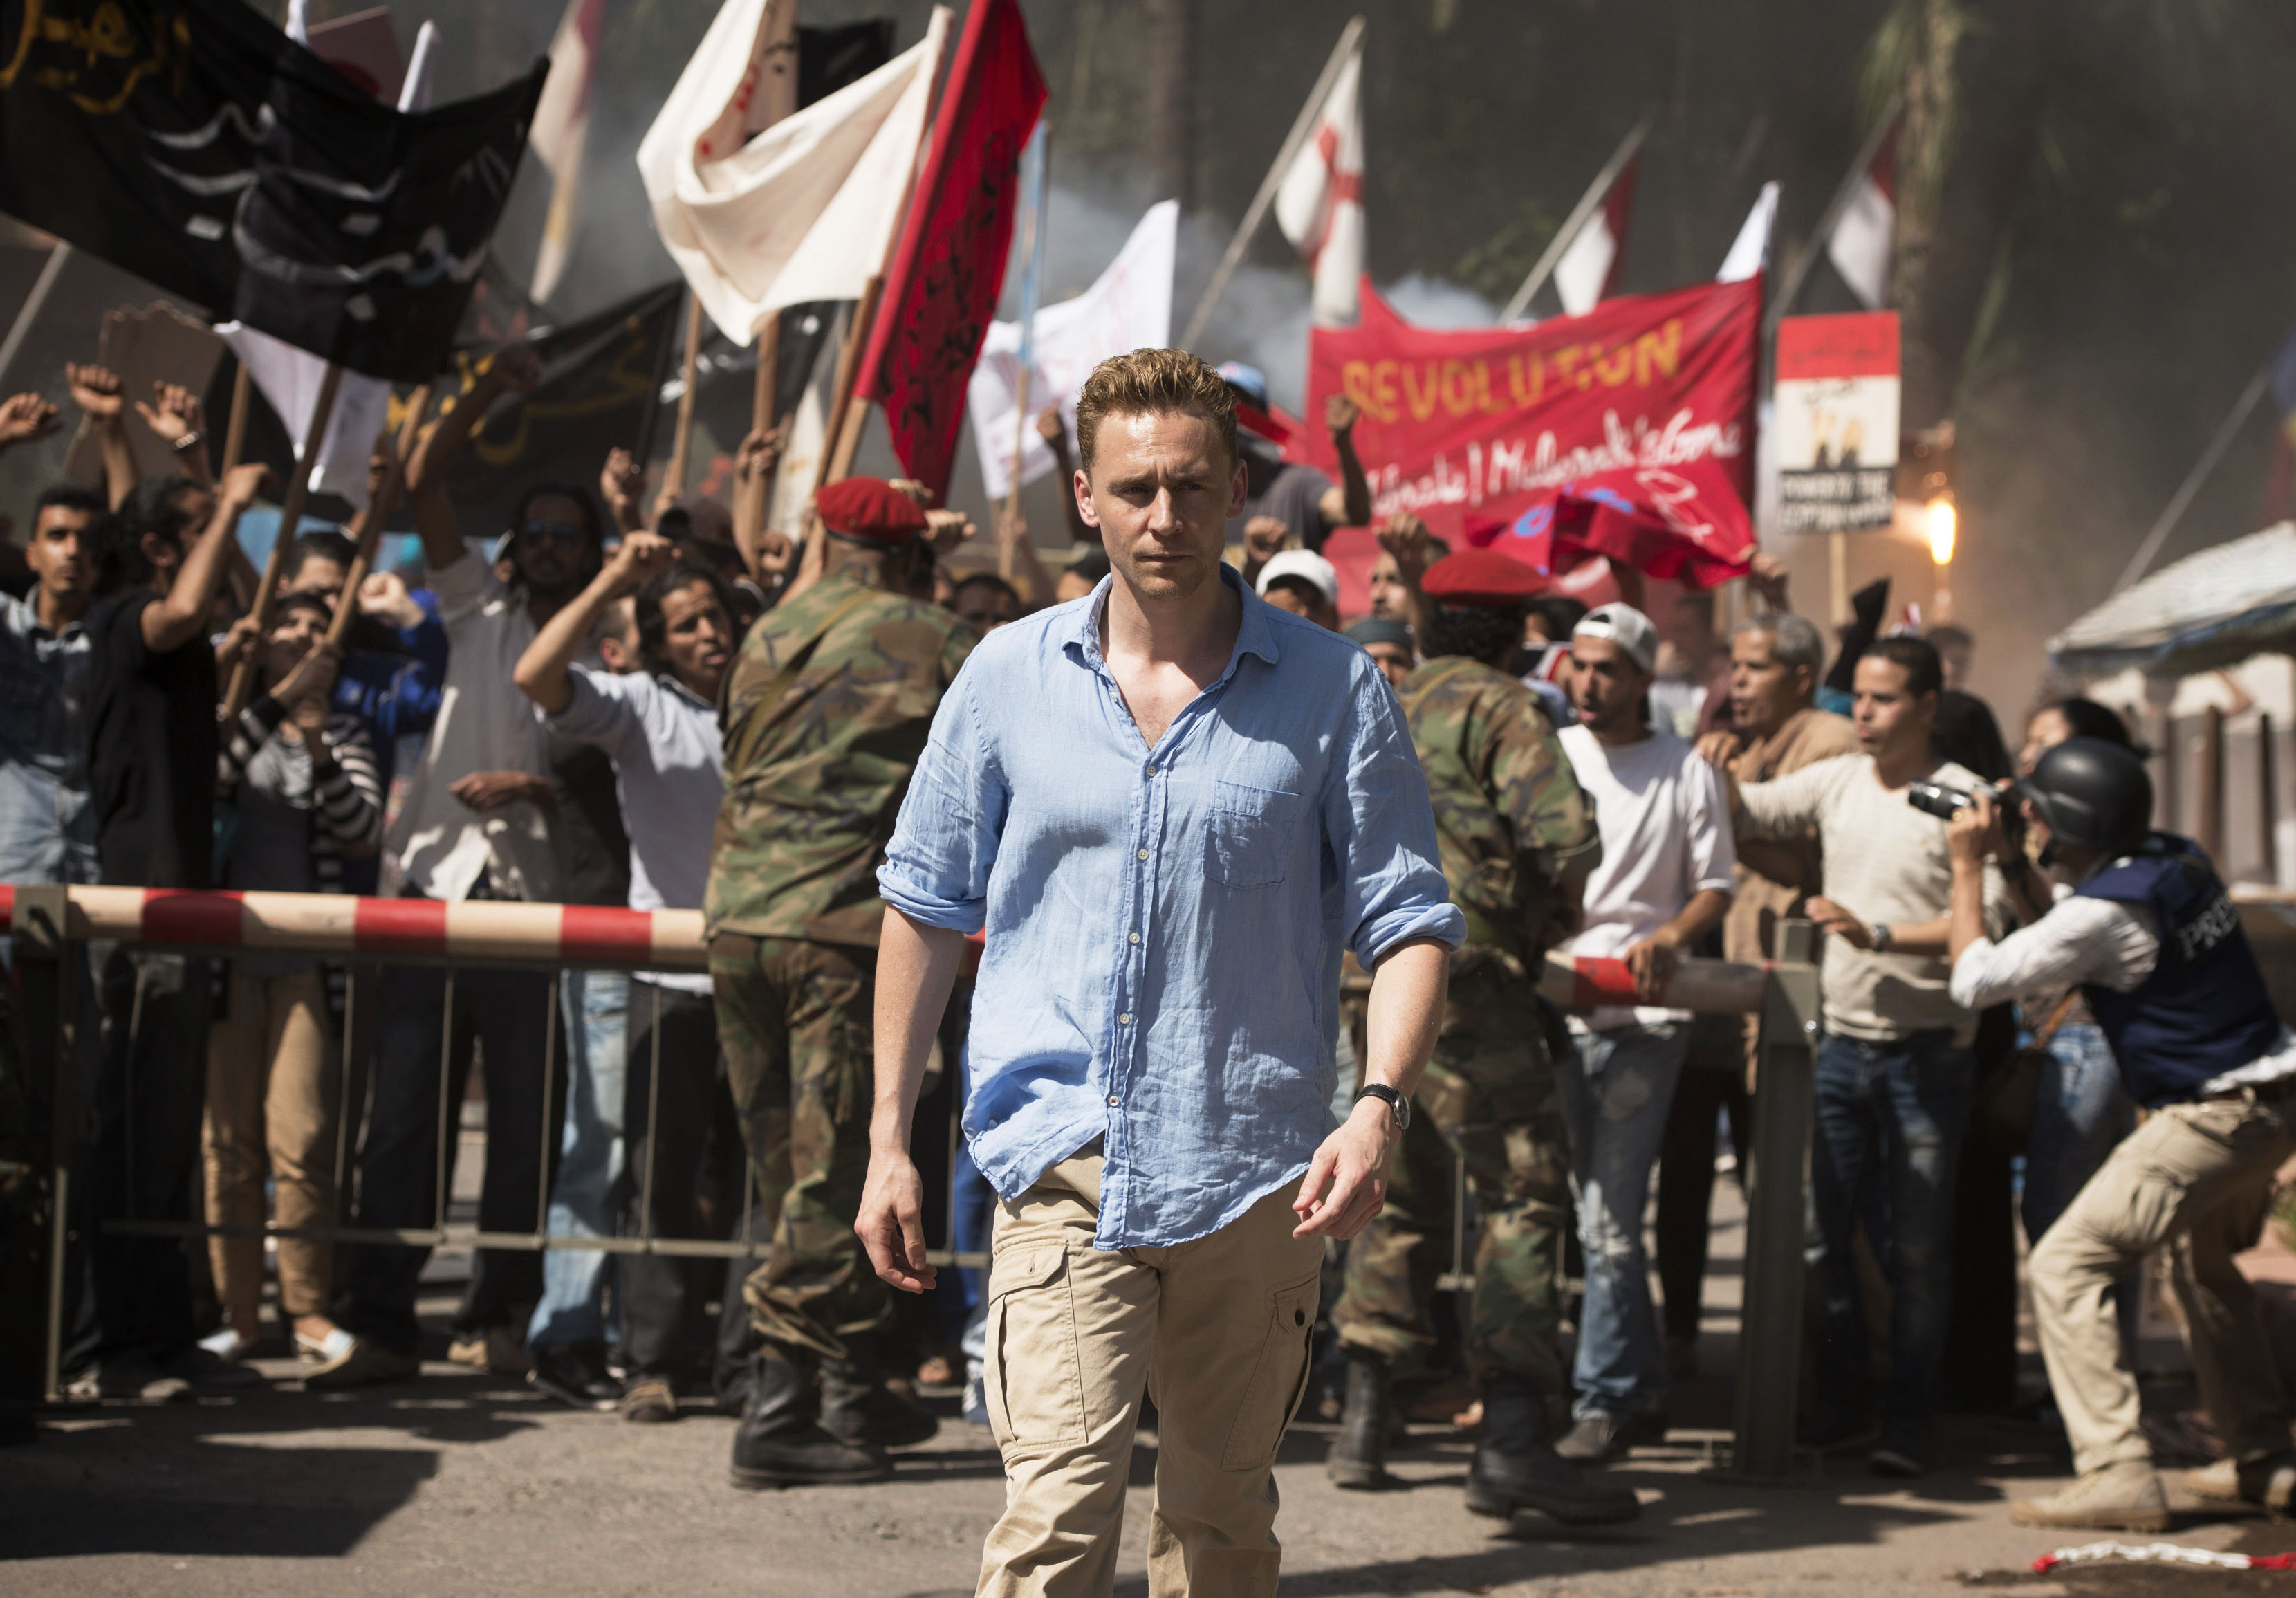 Danish-Jewish director of The Night Manager tipped for Bond | Jewish News